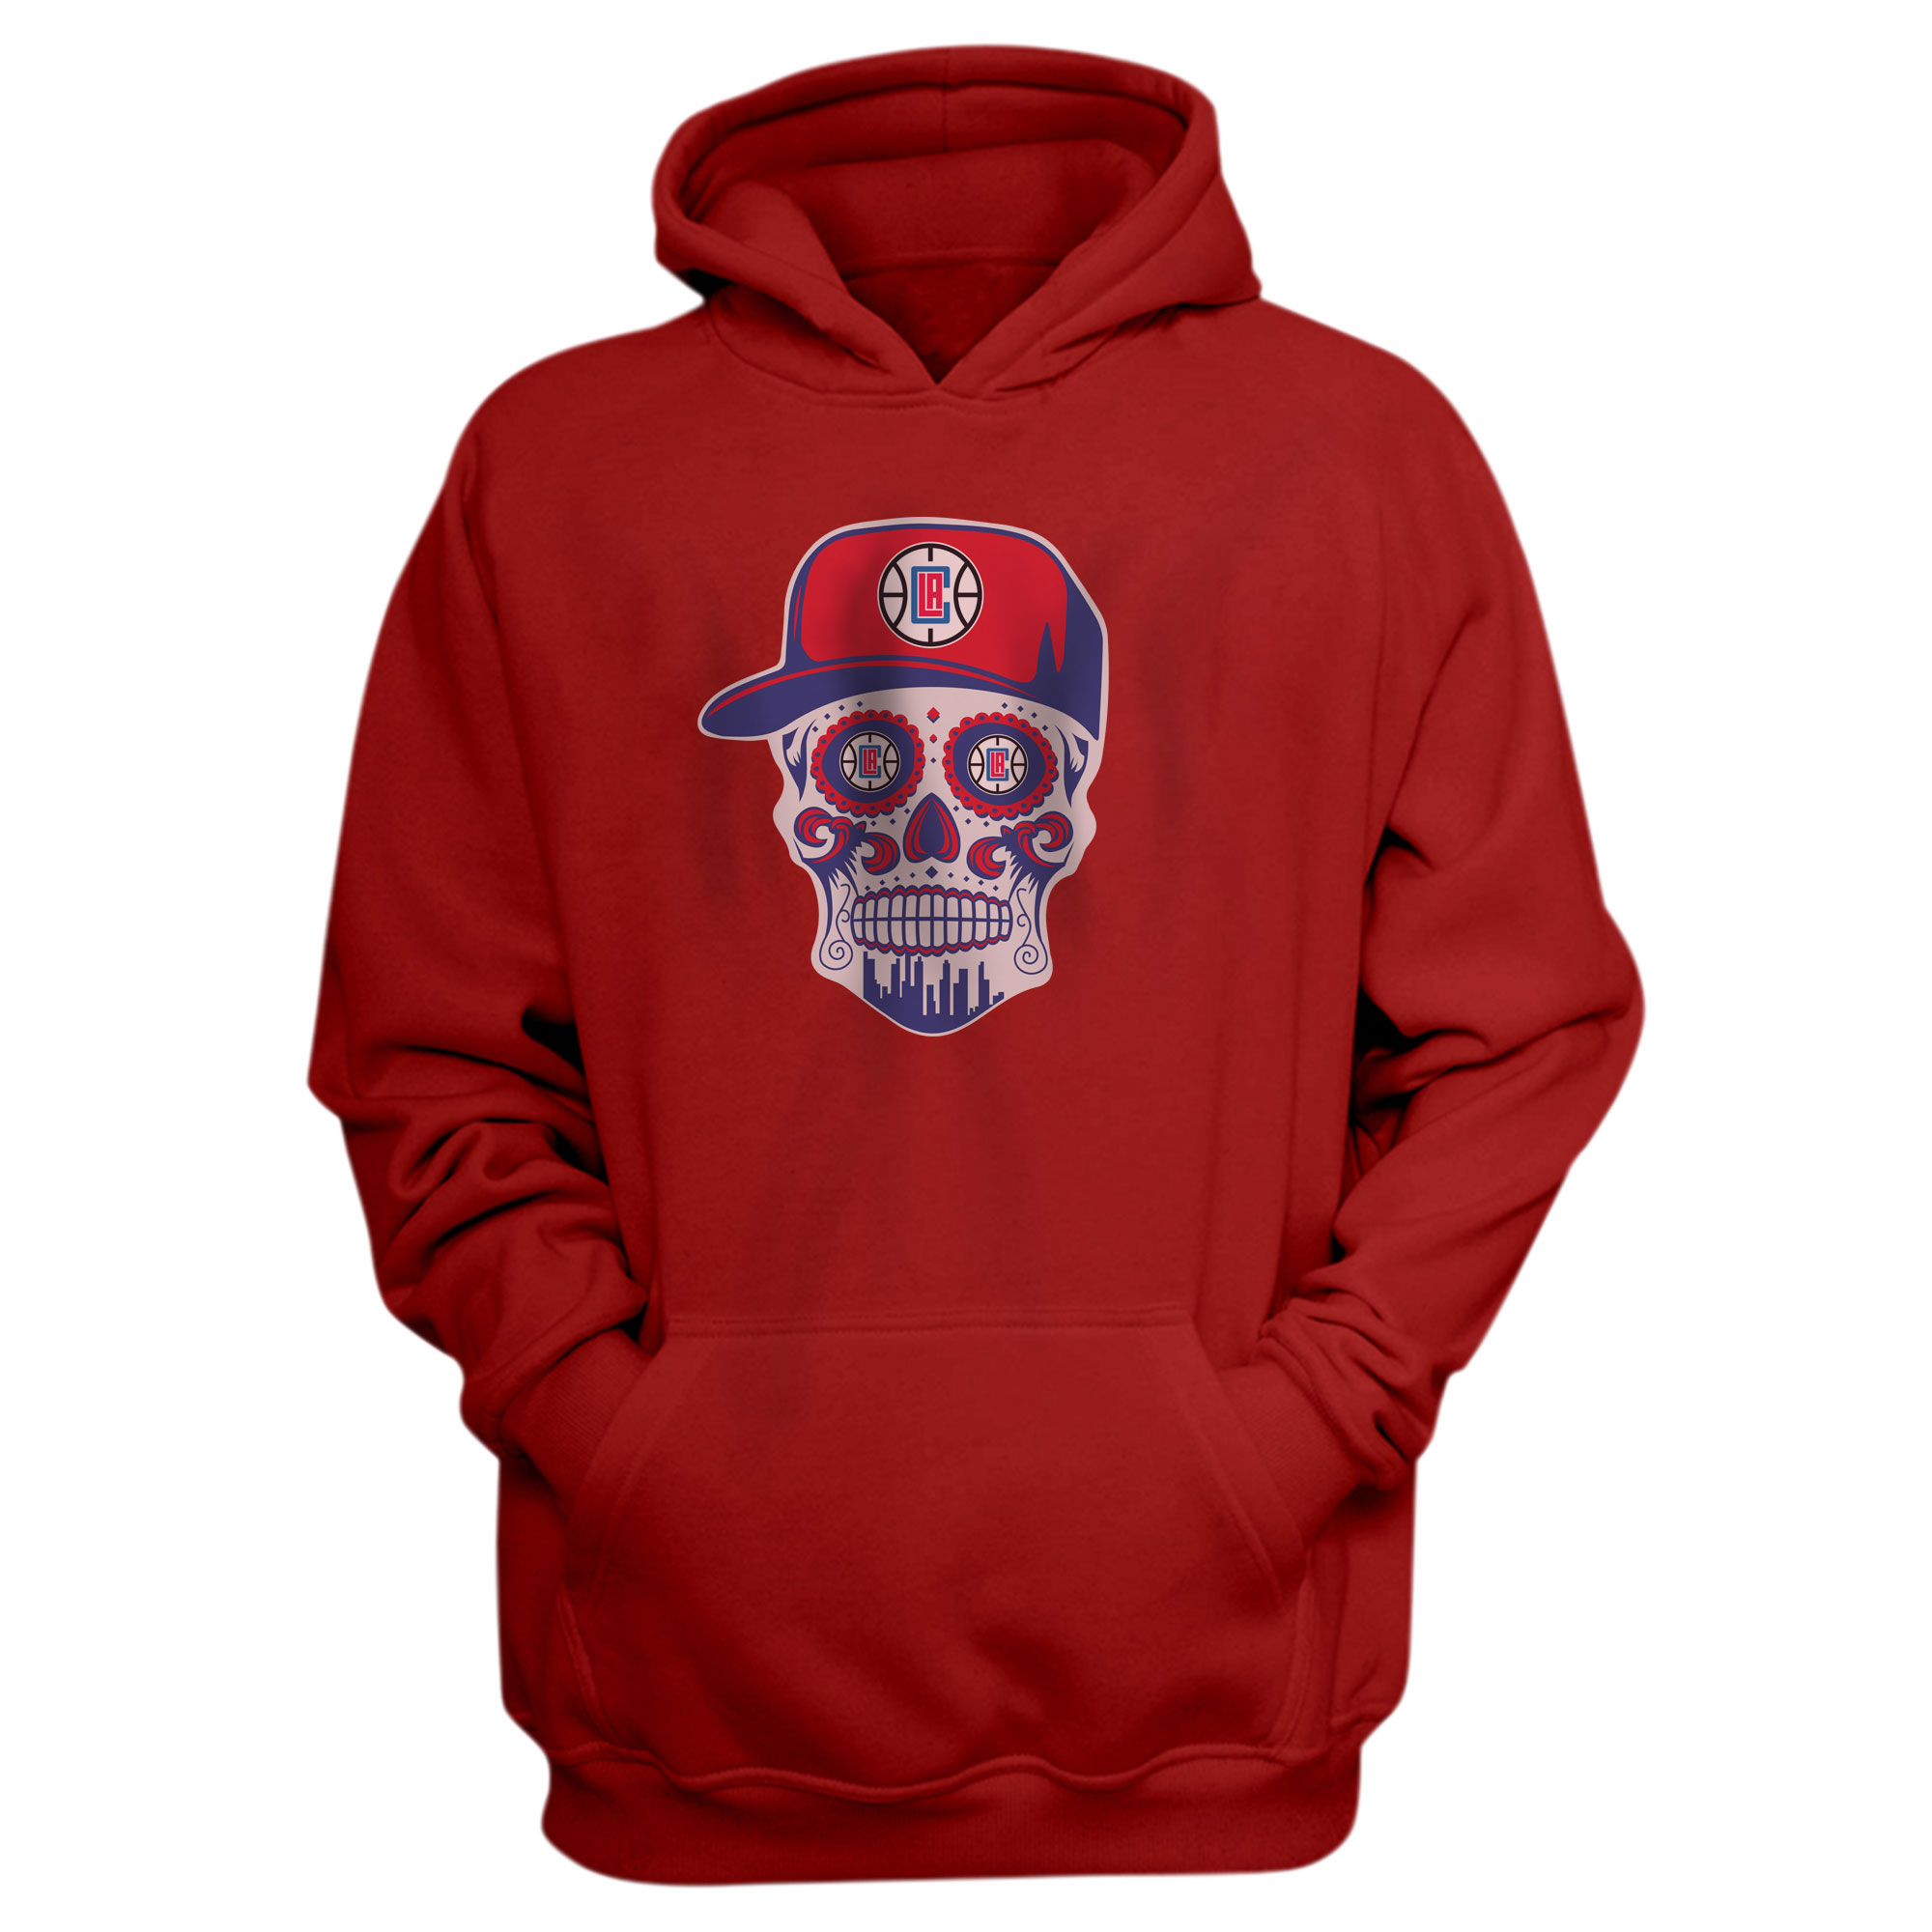 Clippers Skull Hoodie (HD-RED-NP-450-CLIPPERS-SKULL)